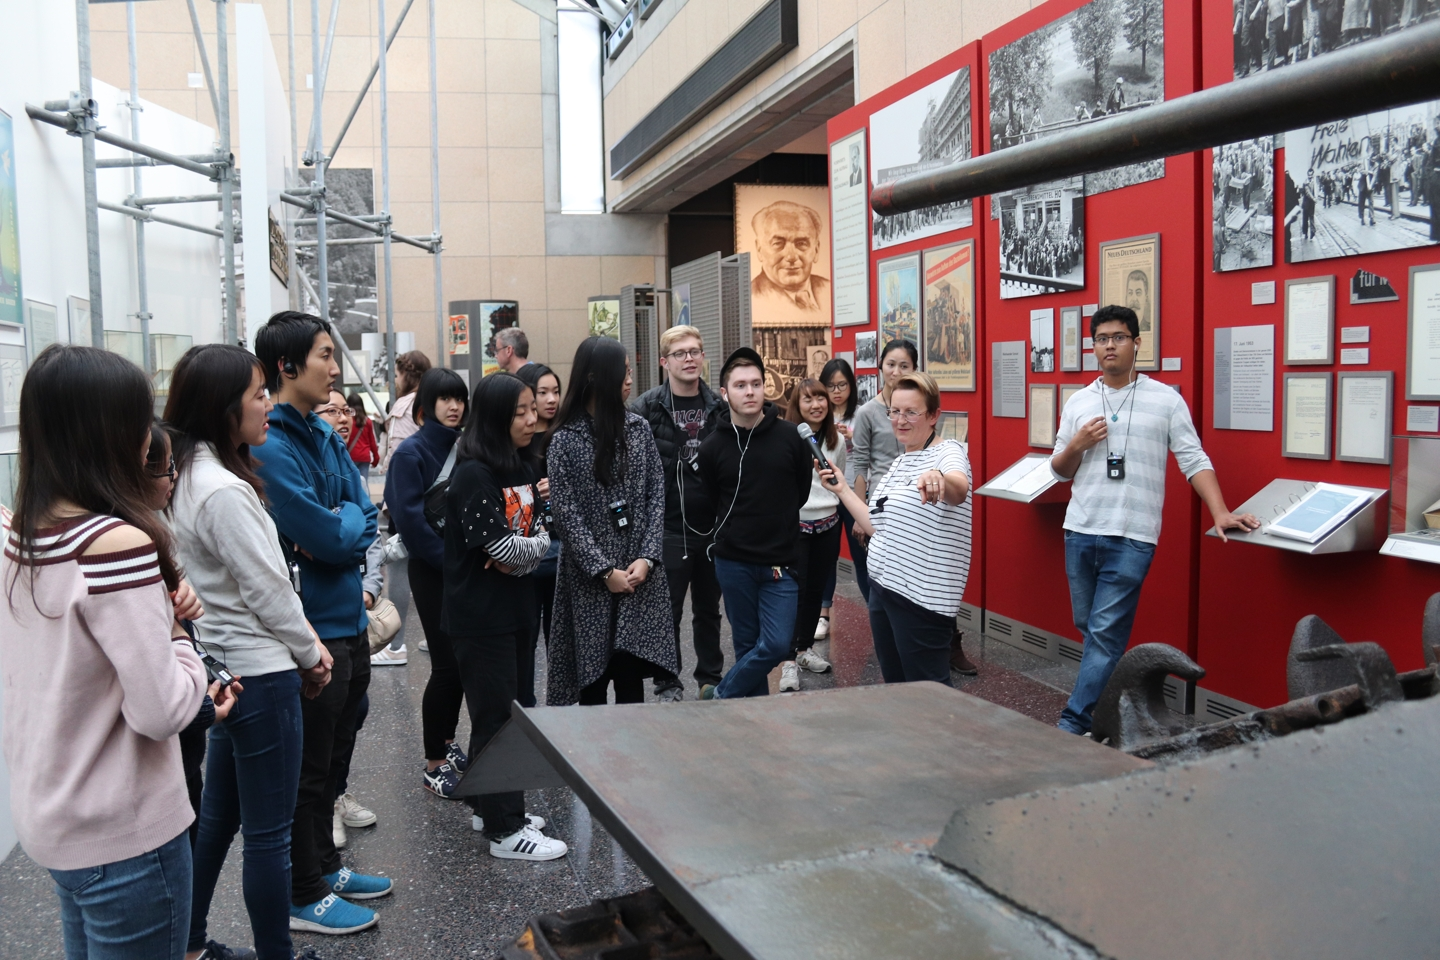 Students listening to the museum guide